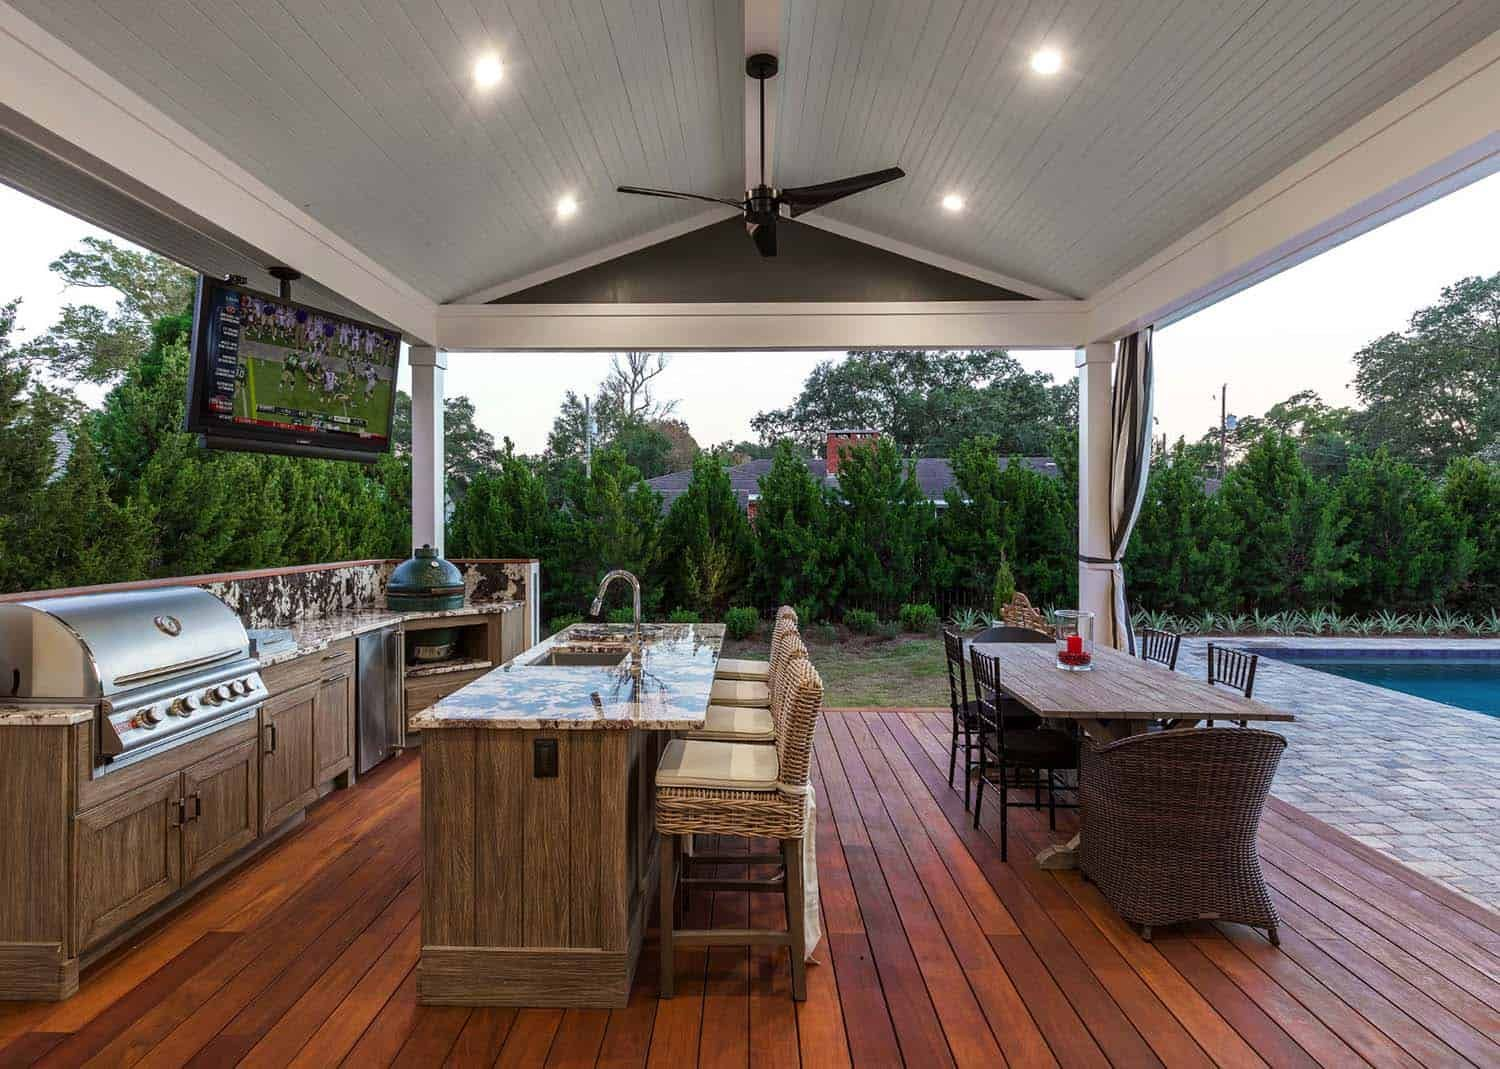 38 absolutely fantastic outdoor kitchen ideas for dining al fresco with images outdoor on outdoor kitchen plans layout id=57357